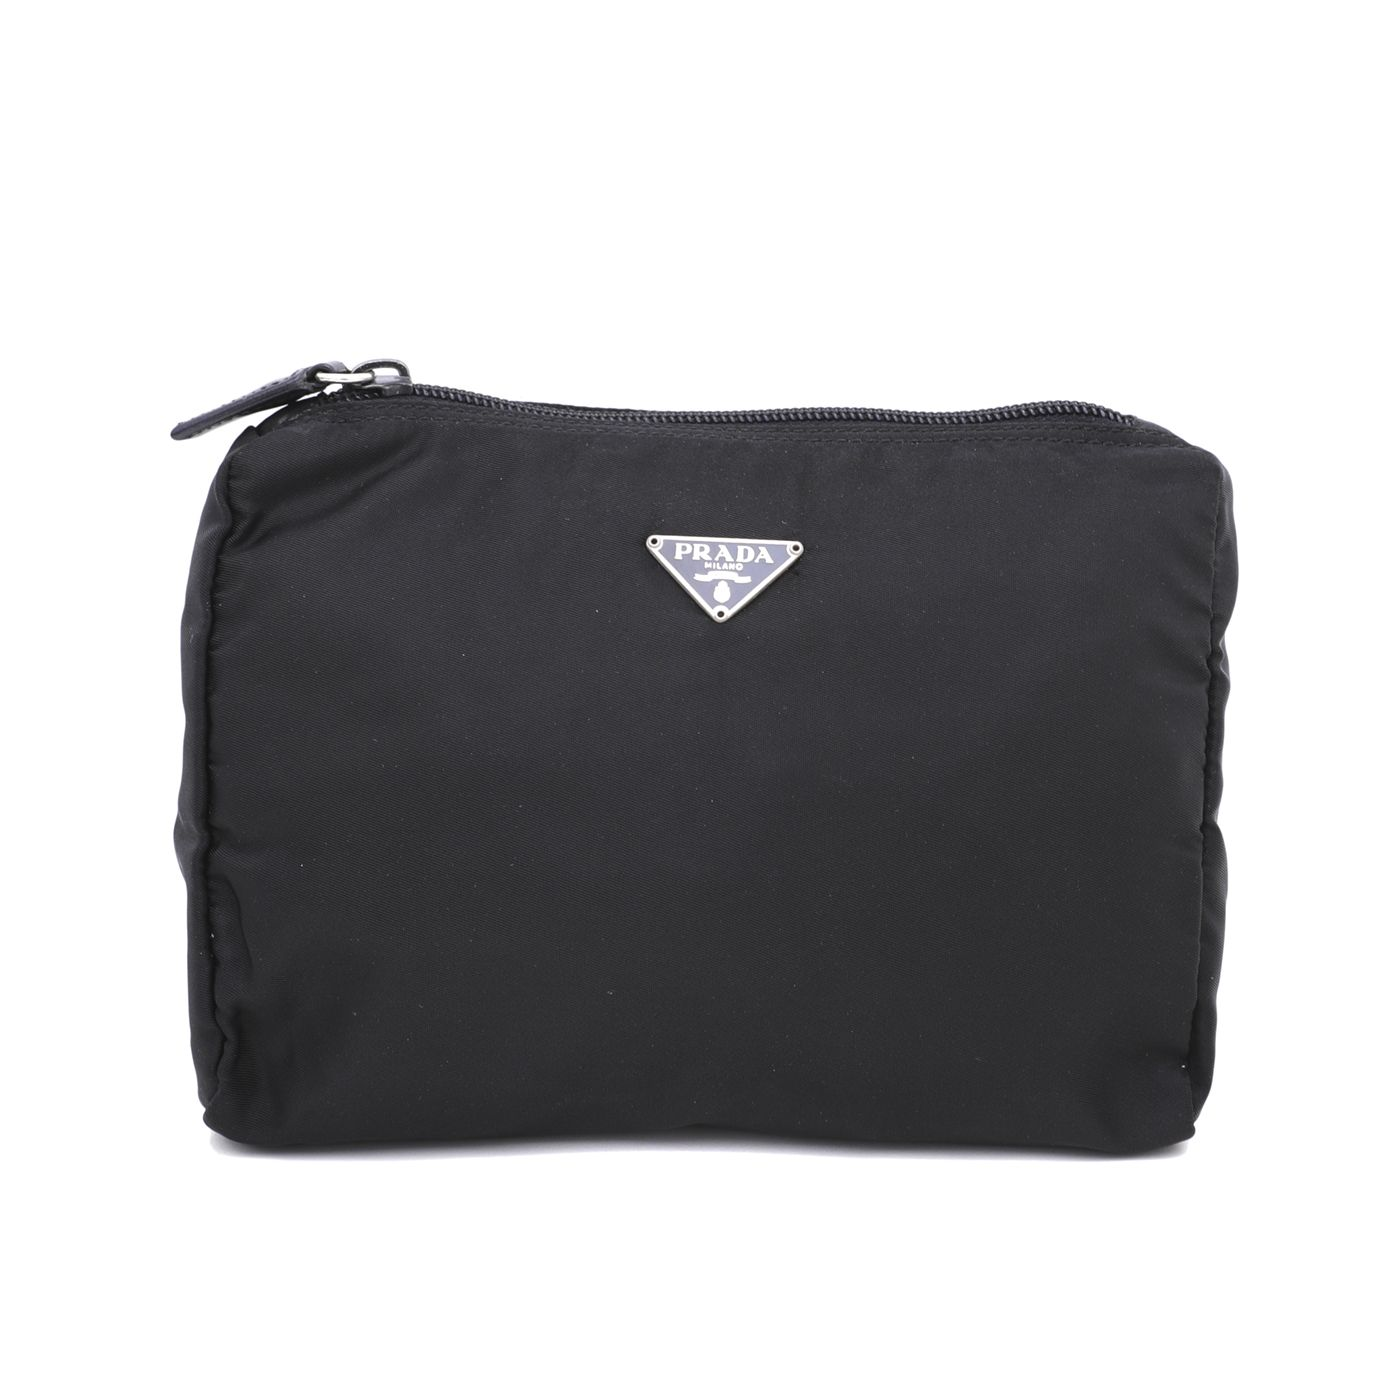 Prada Black Nylon Vela Cosmetic Zip Pouch